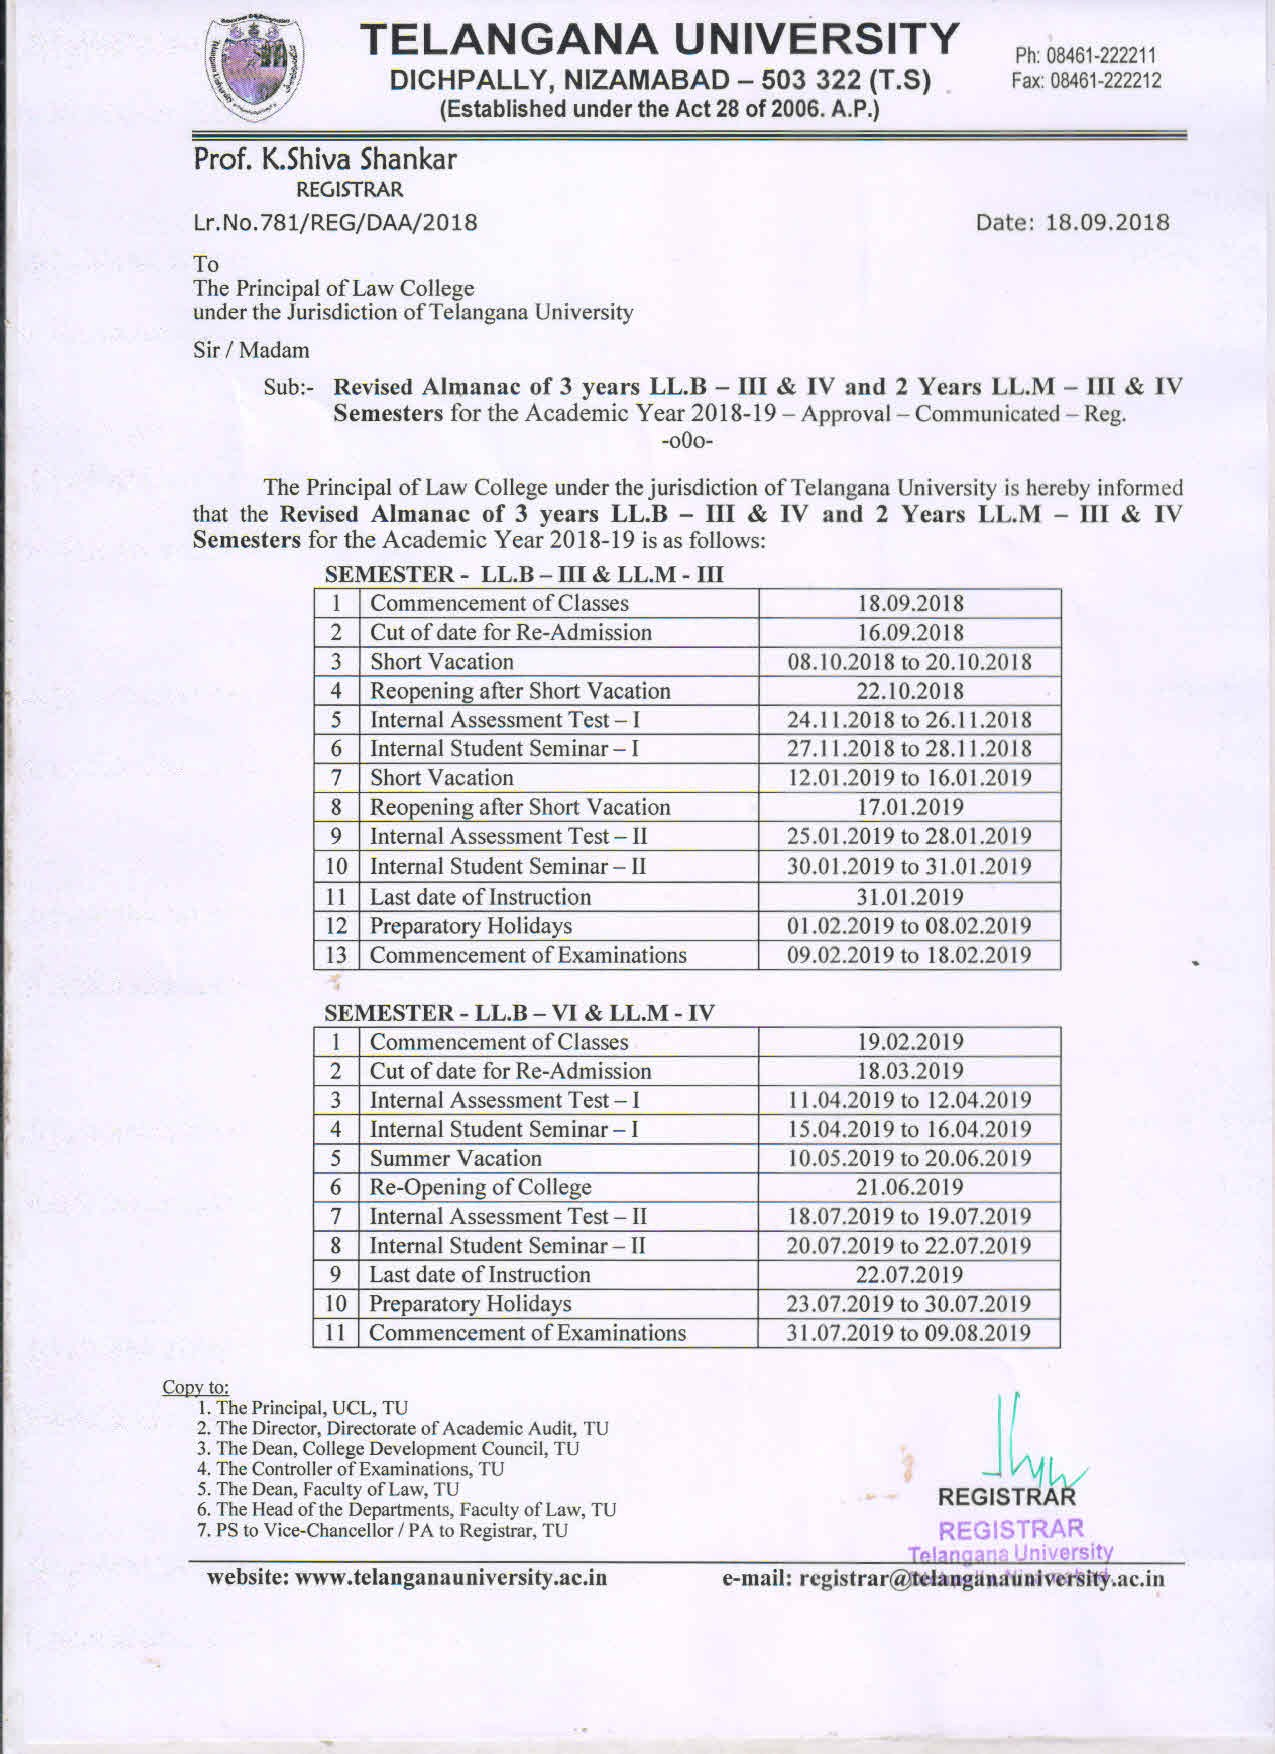 Revised Almanac of 3 years L L B III & IV SEM and 2 years L L M III & IV sem for the A Y 2018 19